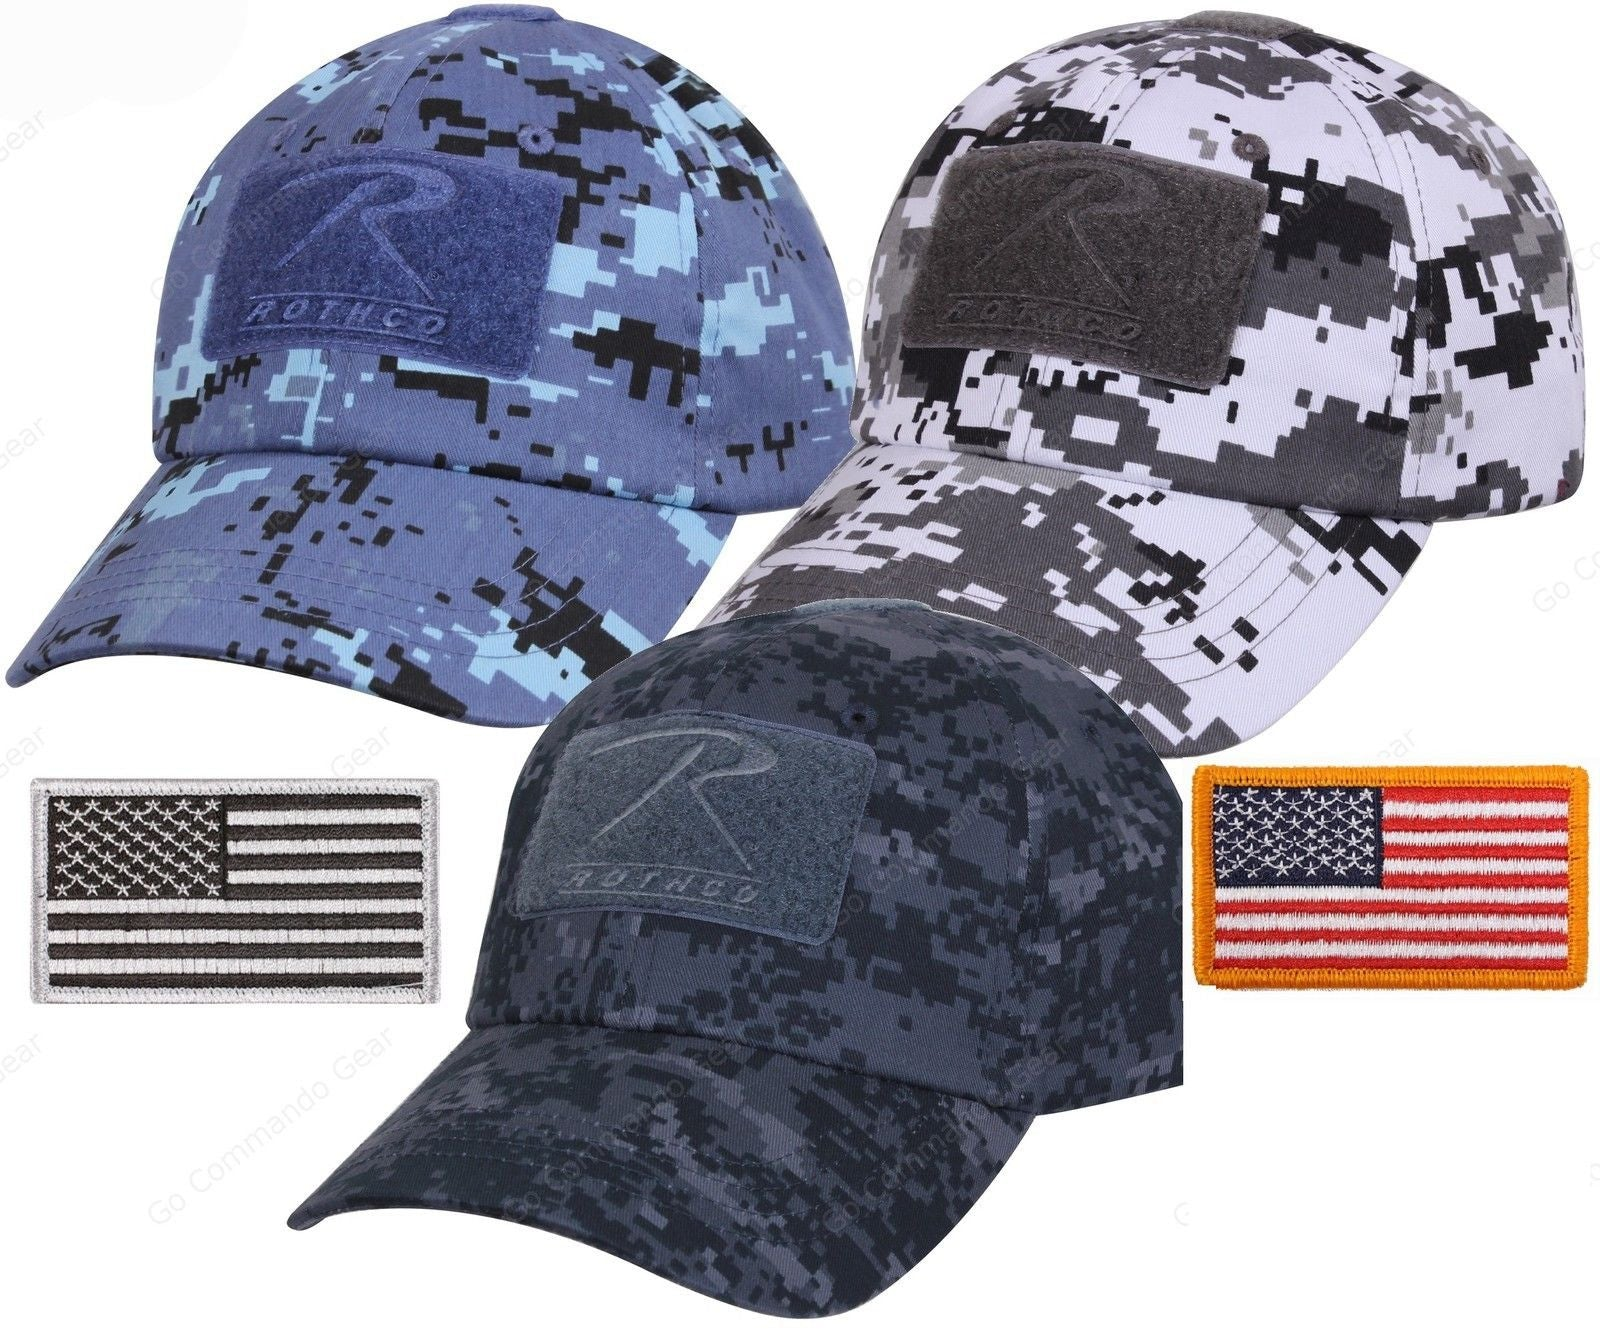 Mens Digital Camouflage Tactical Cap   USA Flag Patch - Rothco Camo  Baseball Hat ... 82d3f0fd40c